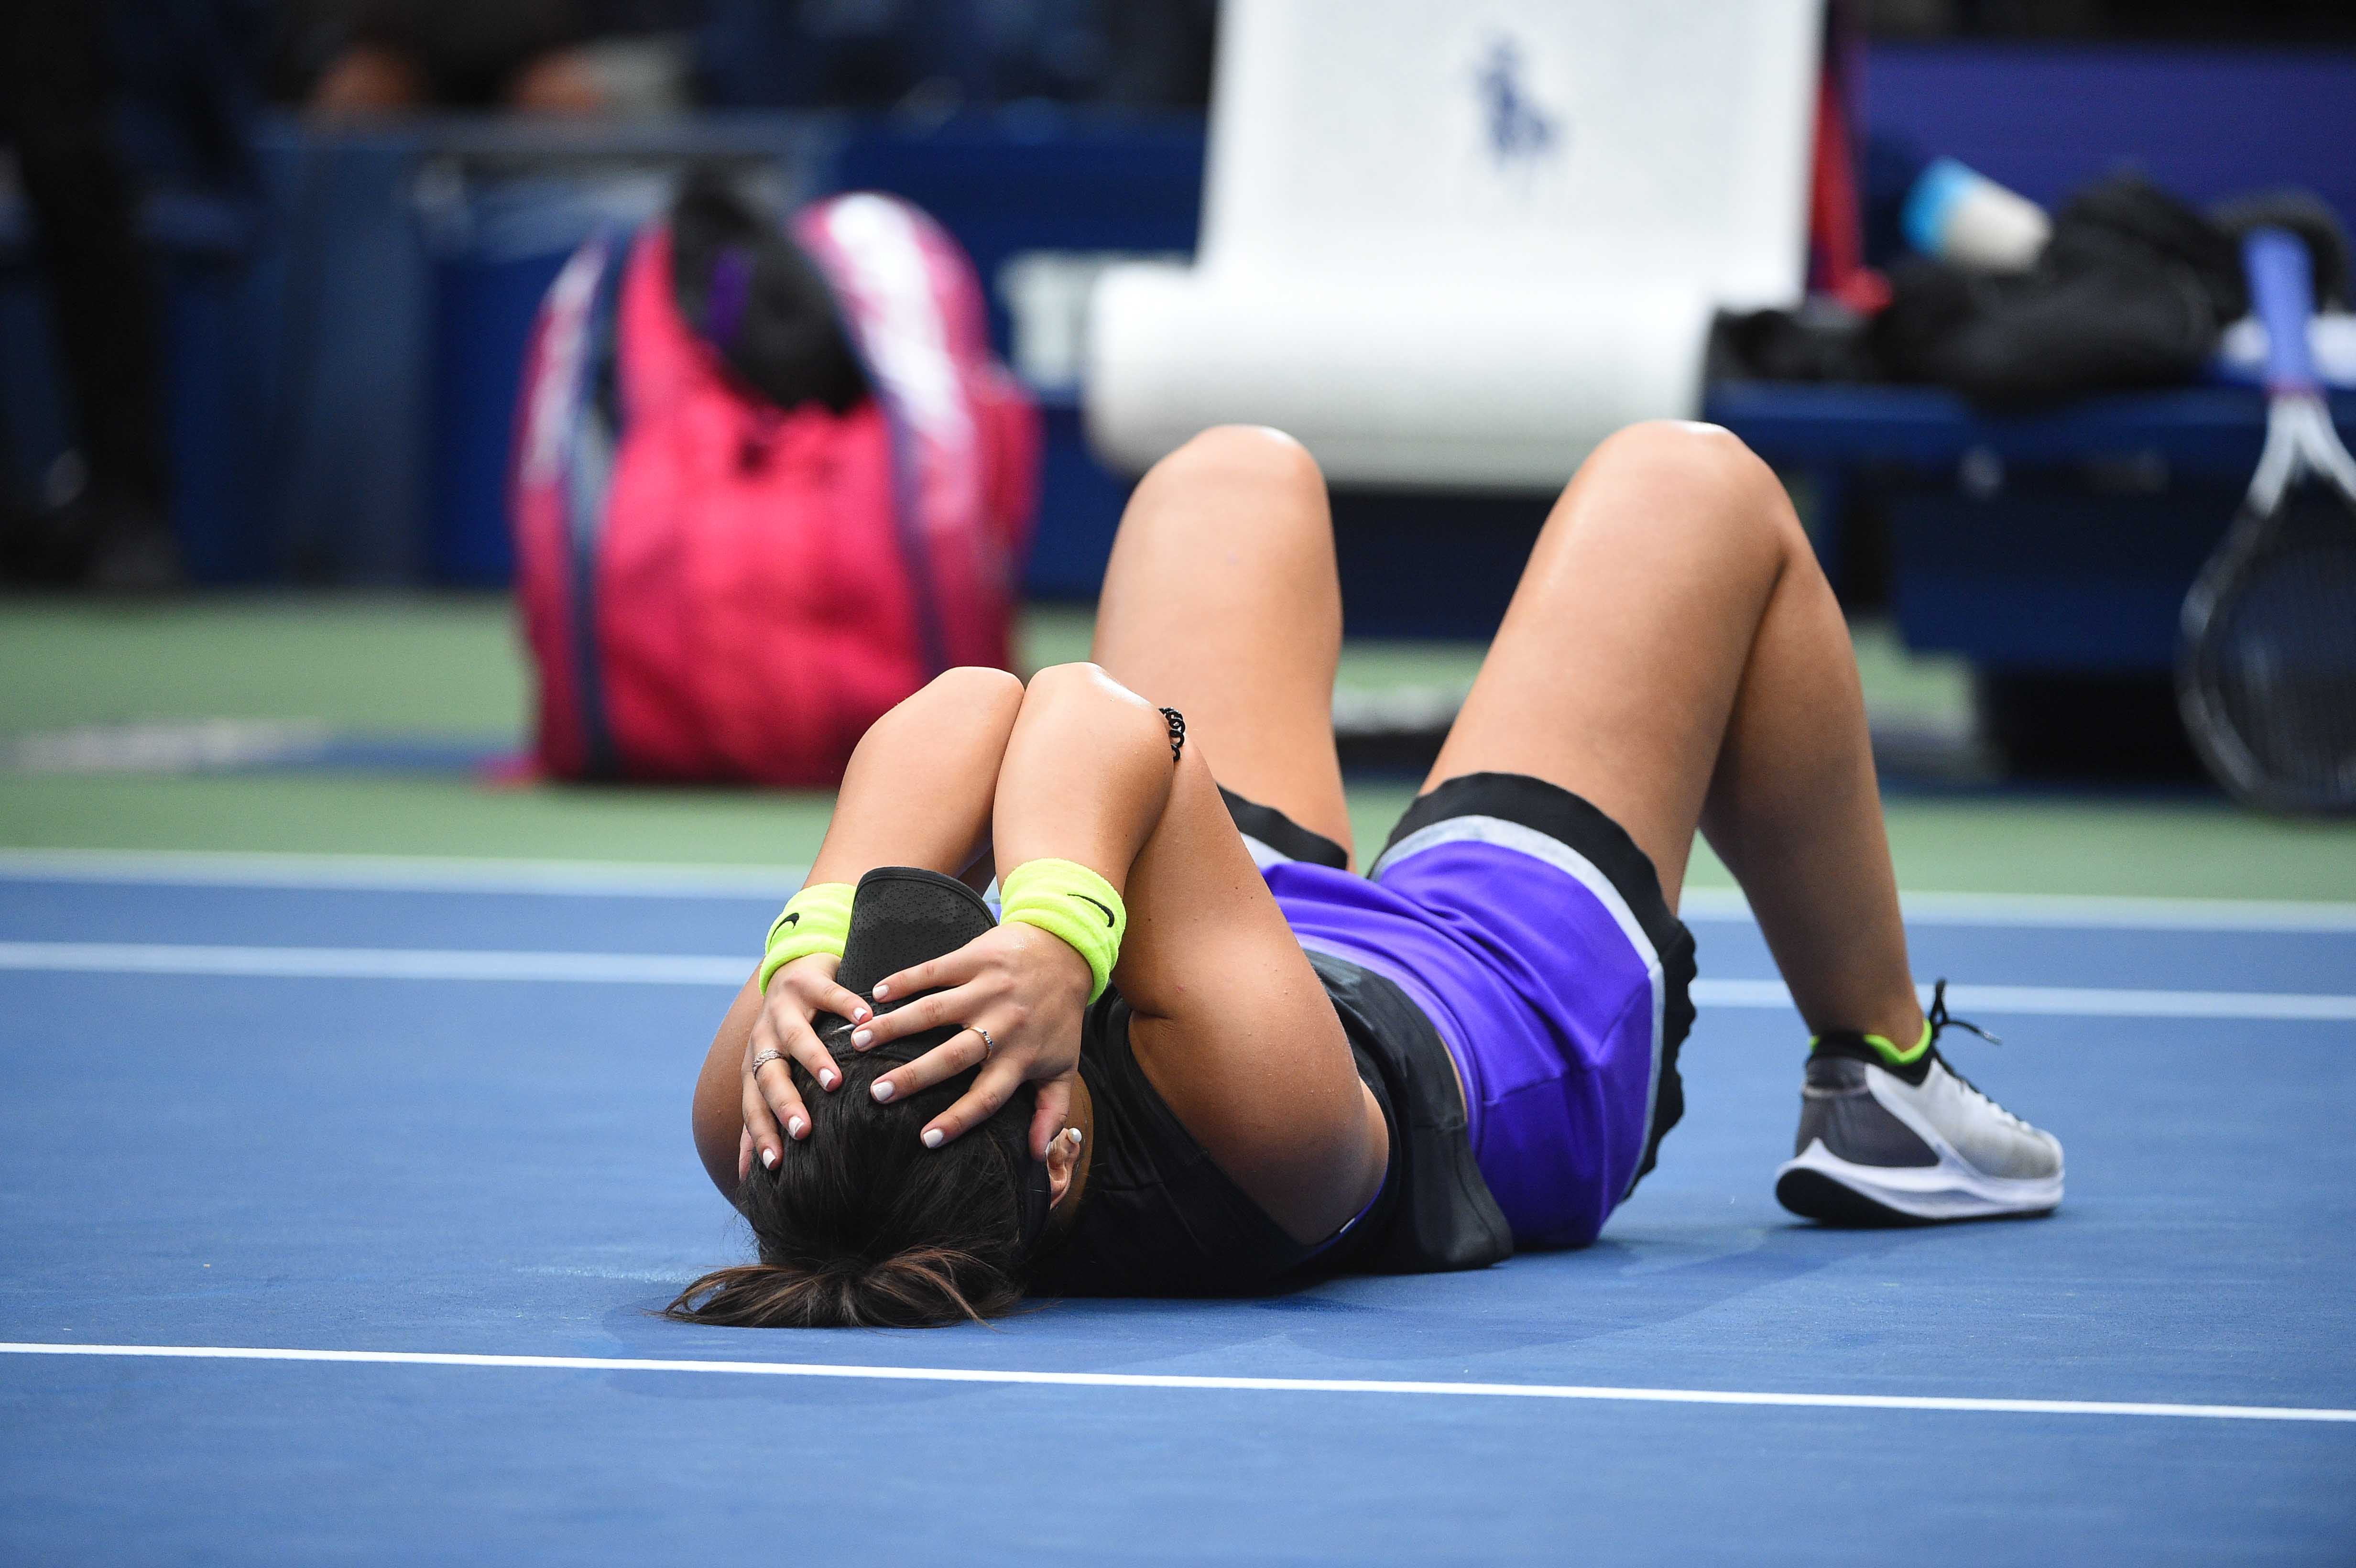 Bianca Andreescu on the ground as she won the 2019 US Open